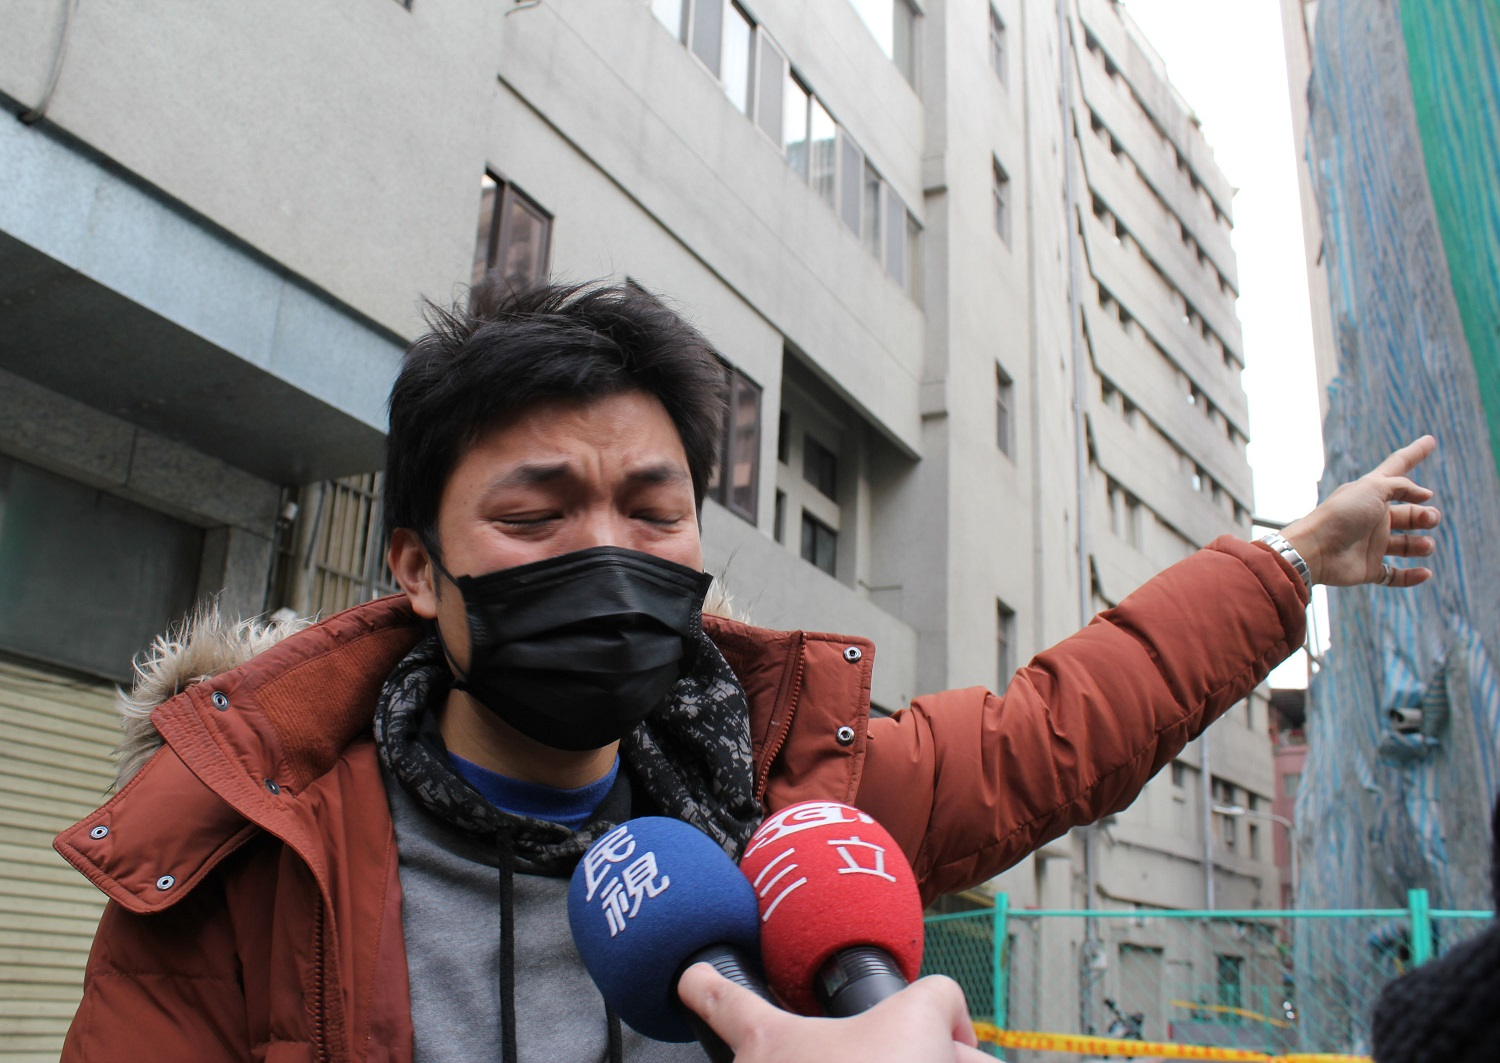 Taipei man's home torn down while meeting with construction co.